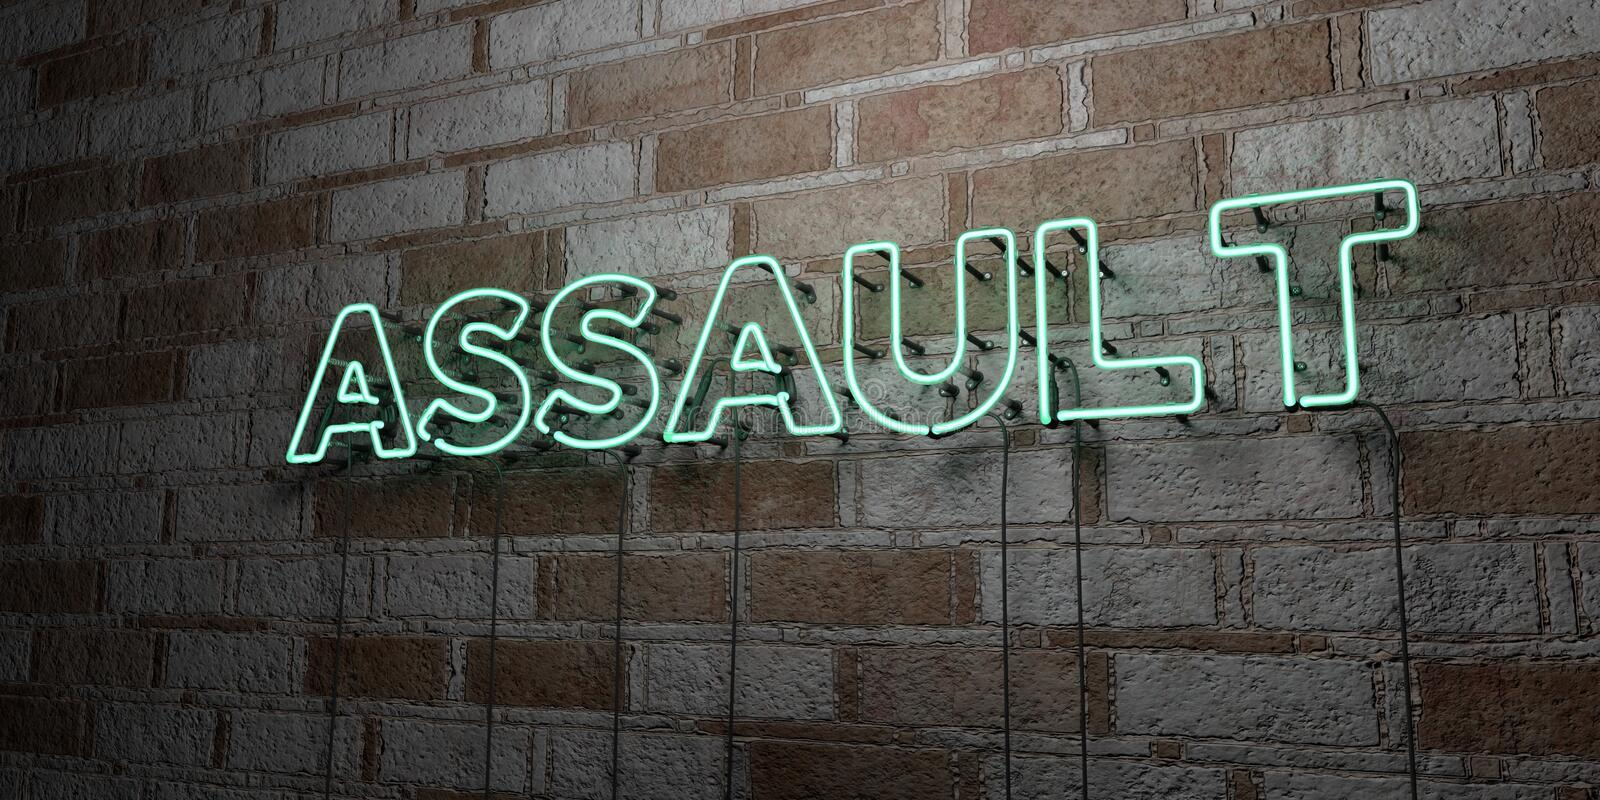 ASSAULT - Glowing Neon Sign on stonework wall - 3D rendered royalty free stock illustration. Can be used for online banner ads and direct mailers stock illustration